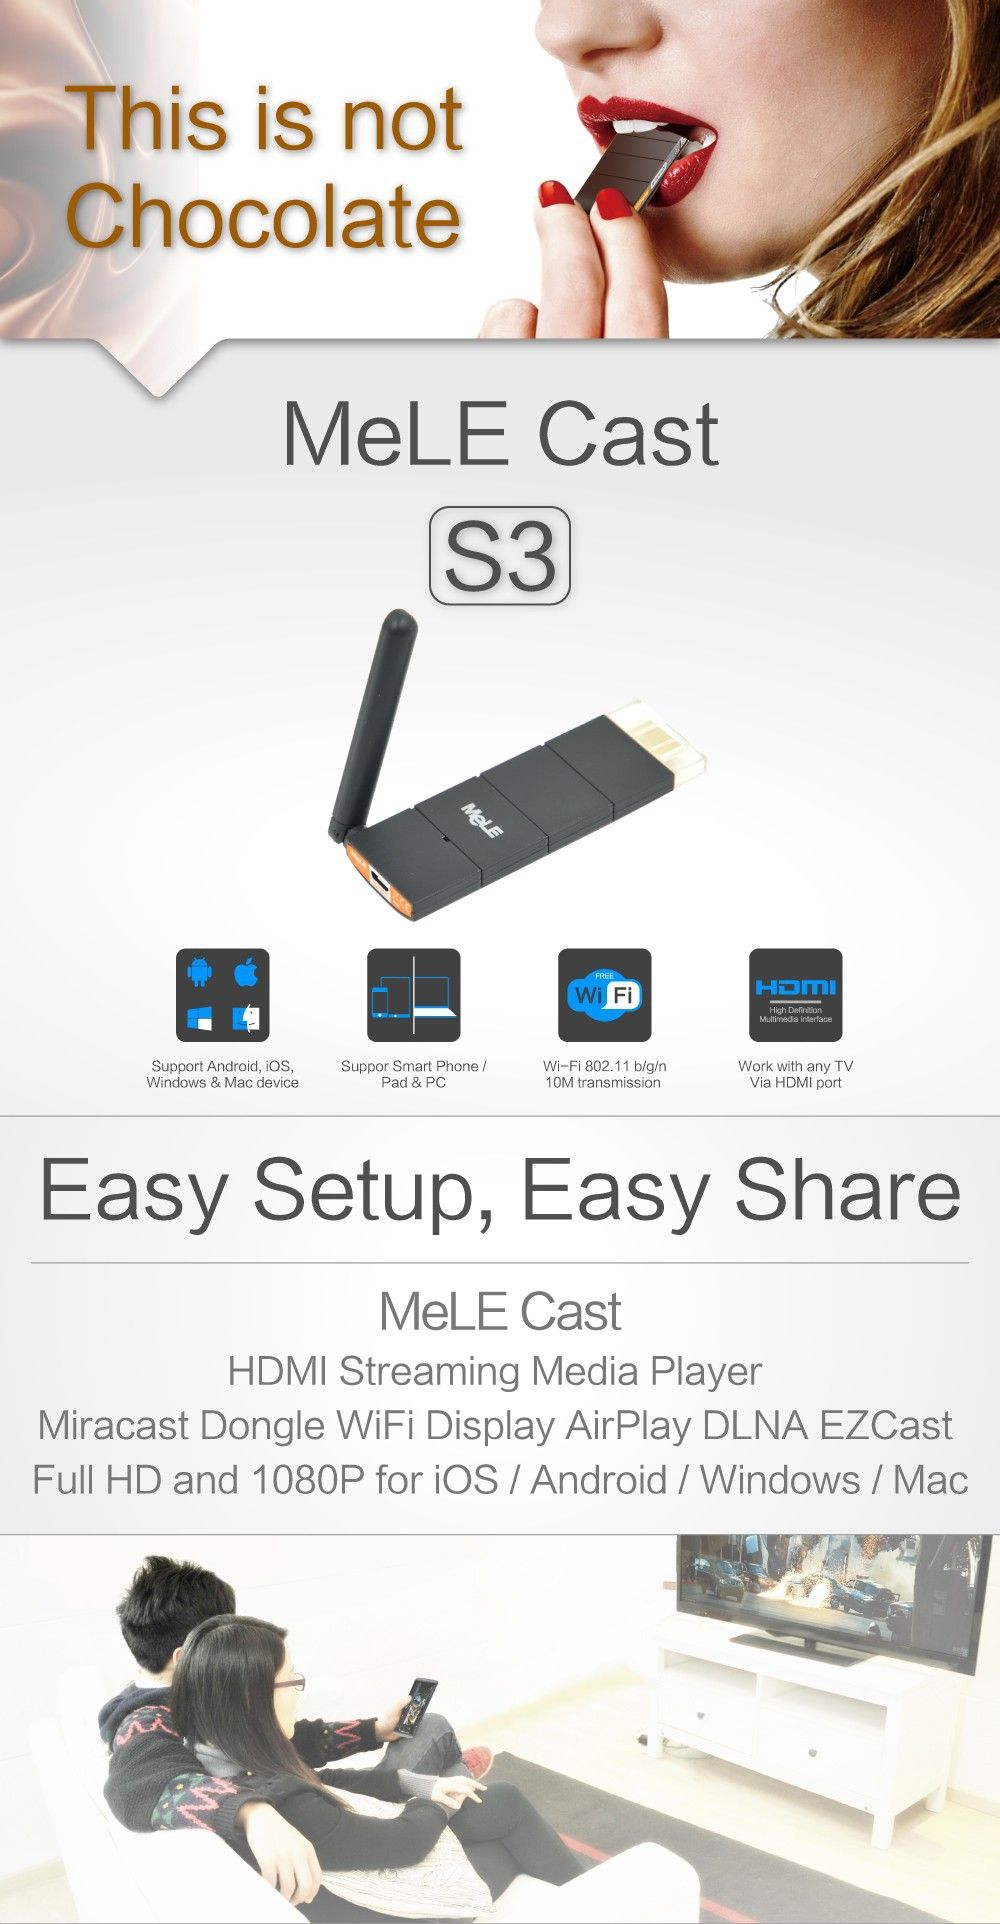 MeLE Cast S3  It is the latest model of HDMI miracast dongle from MeLE, MeLE Cast S3 has much enchanced performance with external WiFi antenna compared to MeLE Cast S1. This is not Chocolate. Easy Setup, Easy Share  MeLE Cast  HDMI Streaming Media Player Miracast Dongle WiFi Display AirPlay DLNA EZCast Full HD and 1080P for iOS / Android / Windows / Mac